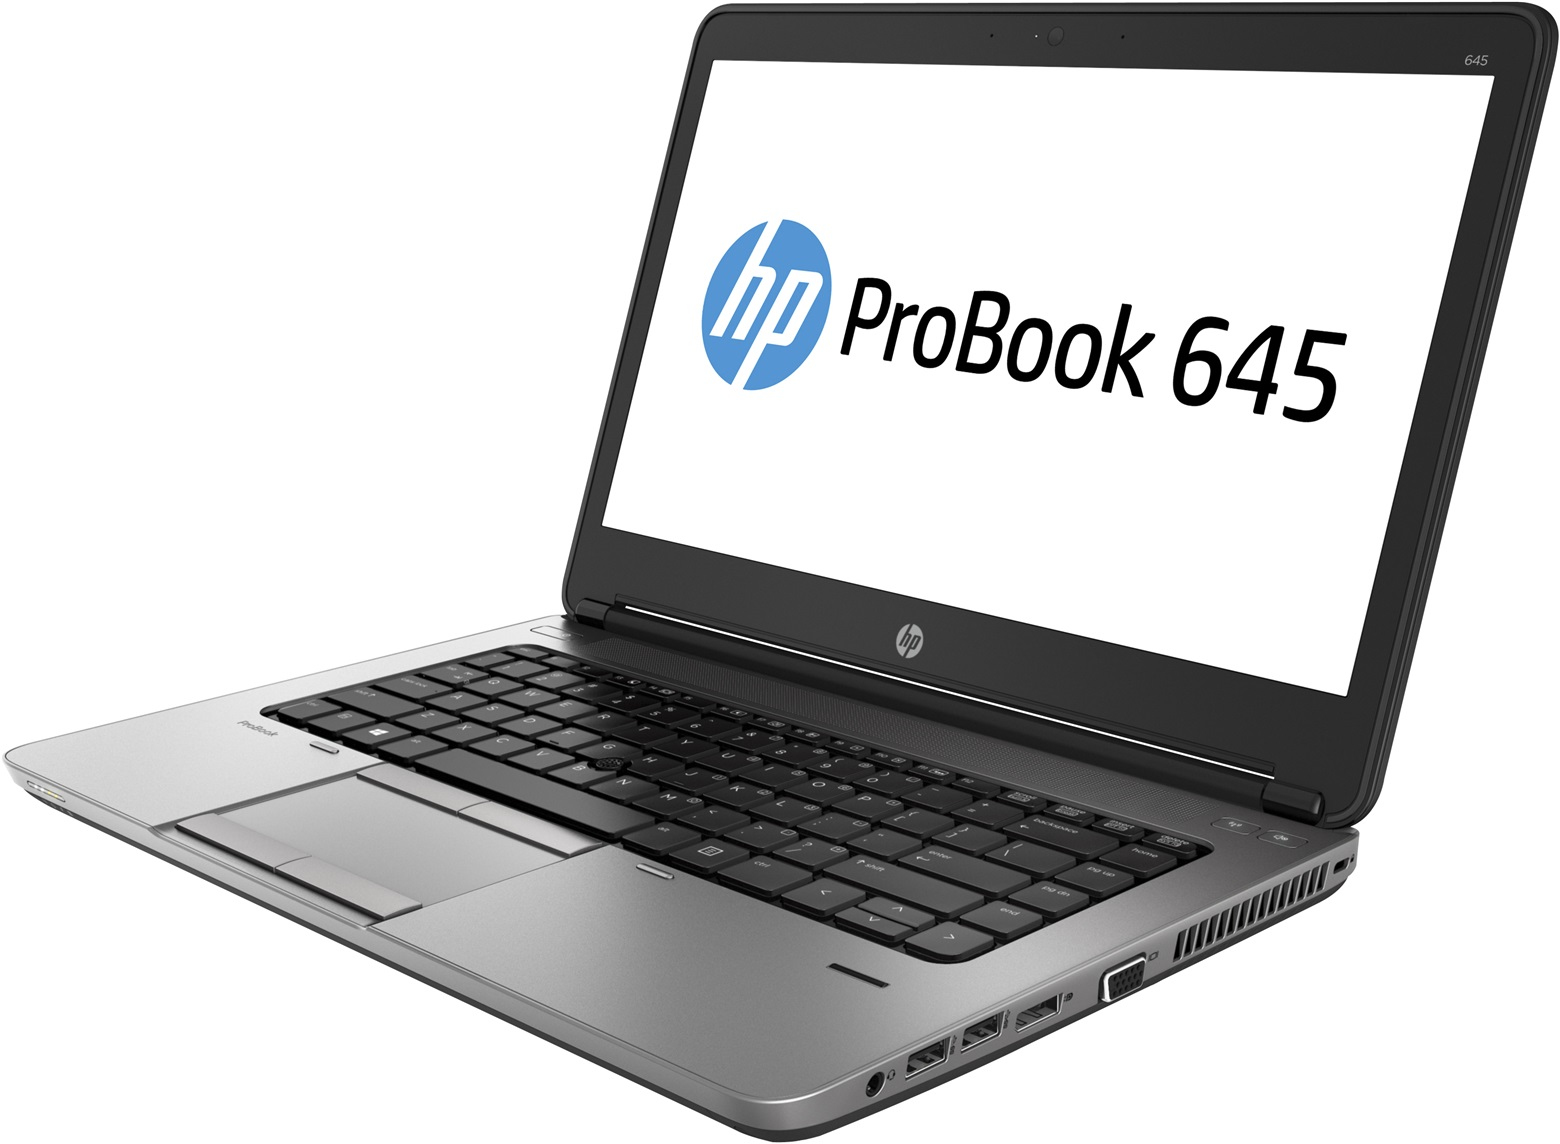 "ProBook 645 G1 : AMD A8 5550M 2.1 Ghz - RAM 8 Go - SSD 256 Go - Aucun lecteur - Ecran 14"" LED HD - Webcam - Windows 7 Home Premium MAR 64 bits"